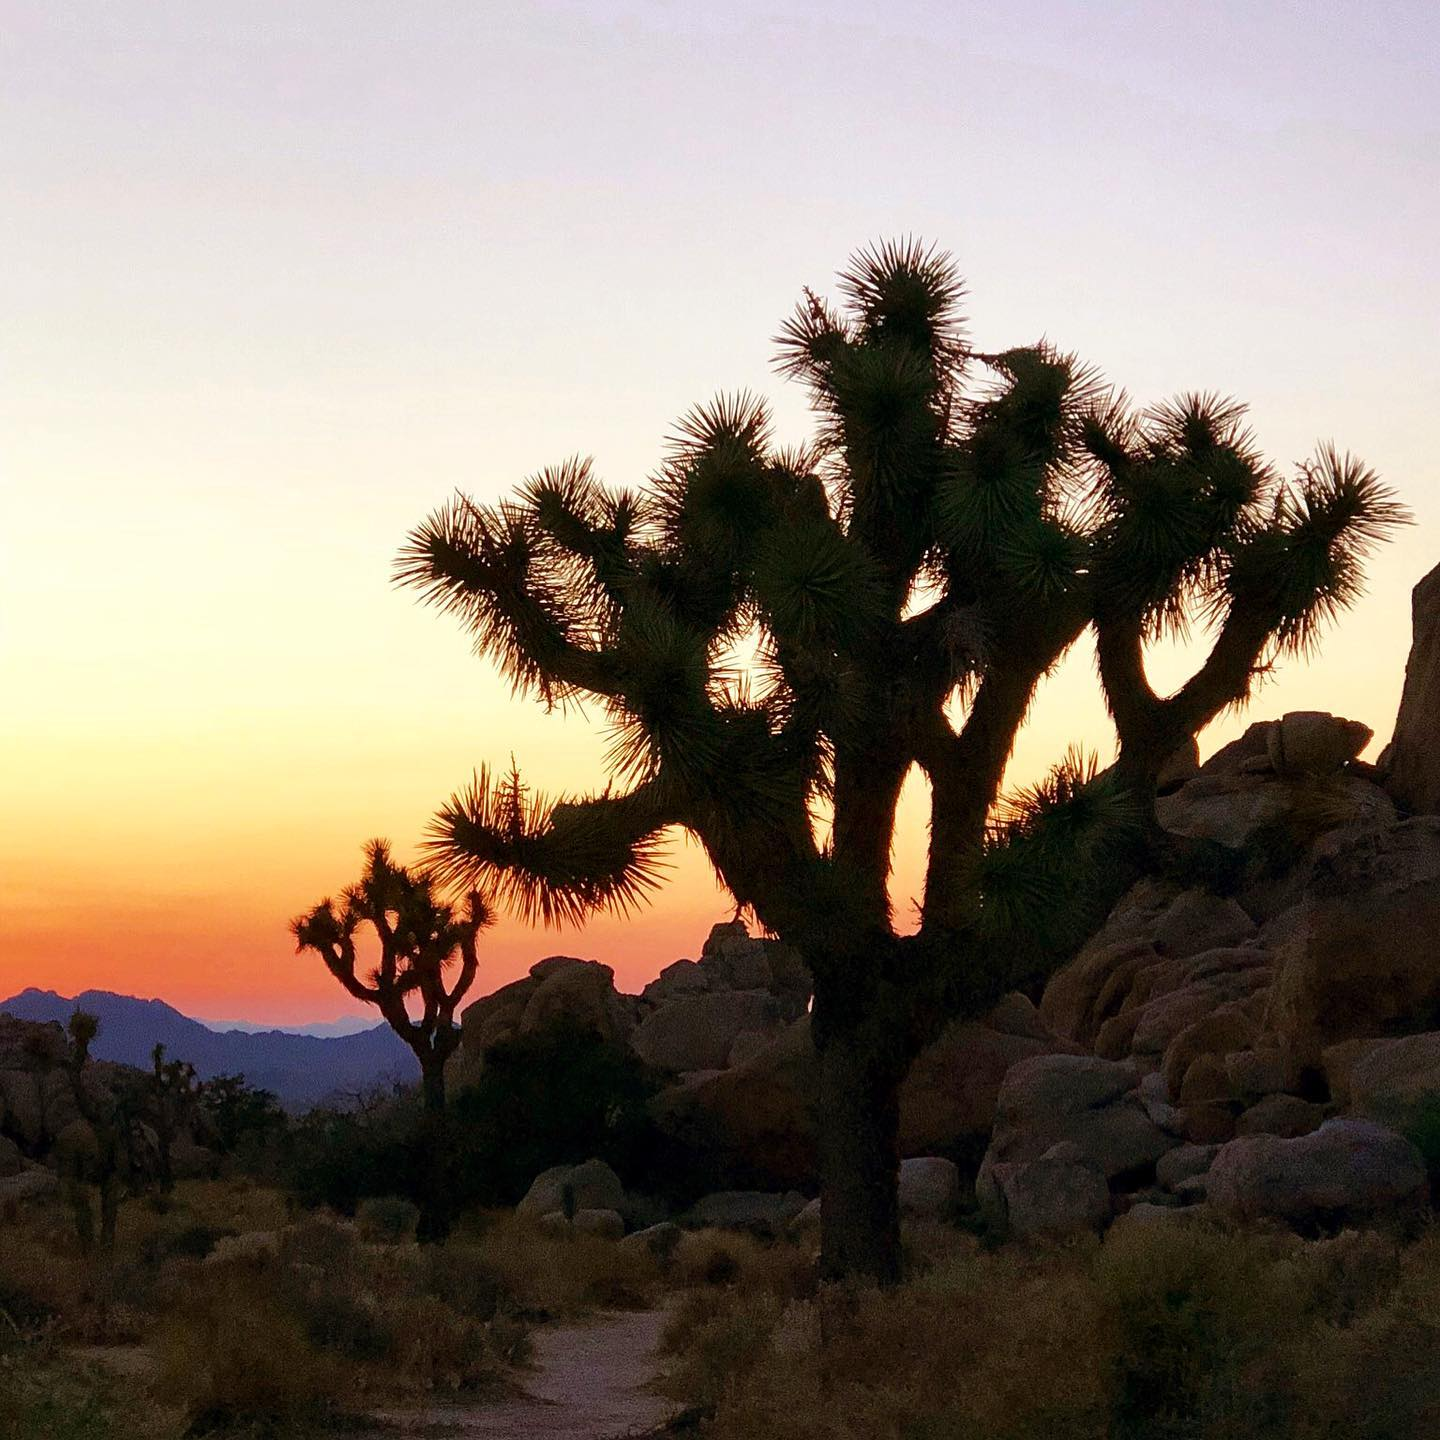 Joshua Tree NP, California Joshua Trees look so pretty at dusk😍  #usa #us #usatravel #usatrip #california #californiatravel #californiatrip #joshuatreenps #joshuatree #joshuatreenationalpark #dusk #naturephotography #naturelove #travelpics #picoftheday #visitcalifornia #desertvibes #desertplants #onlyincalifornia #californiadesert #desert #travelgrams #travelinspiration #travelislife #explorecalifornia #passportpassion #travelmore #travelmoments #travelmemories #travelinbetween